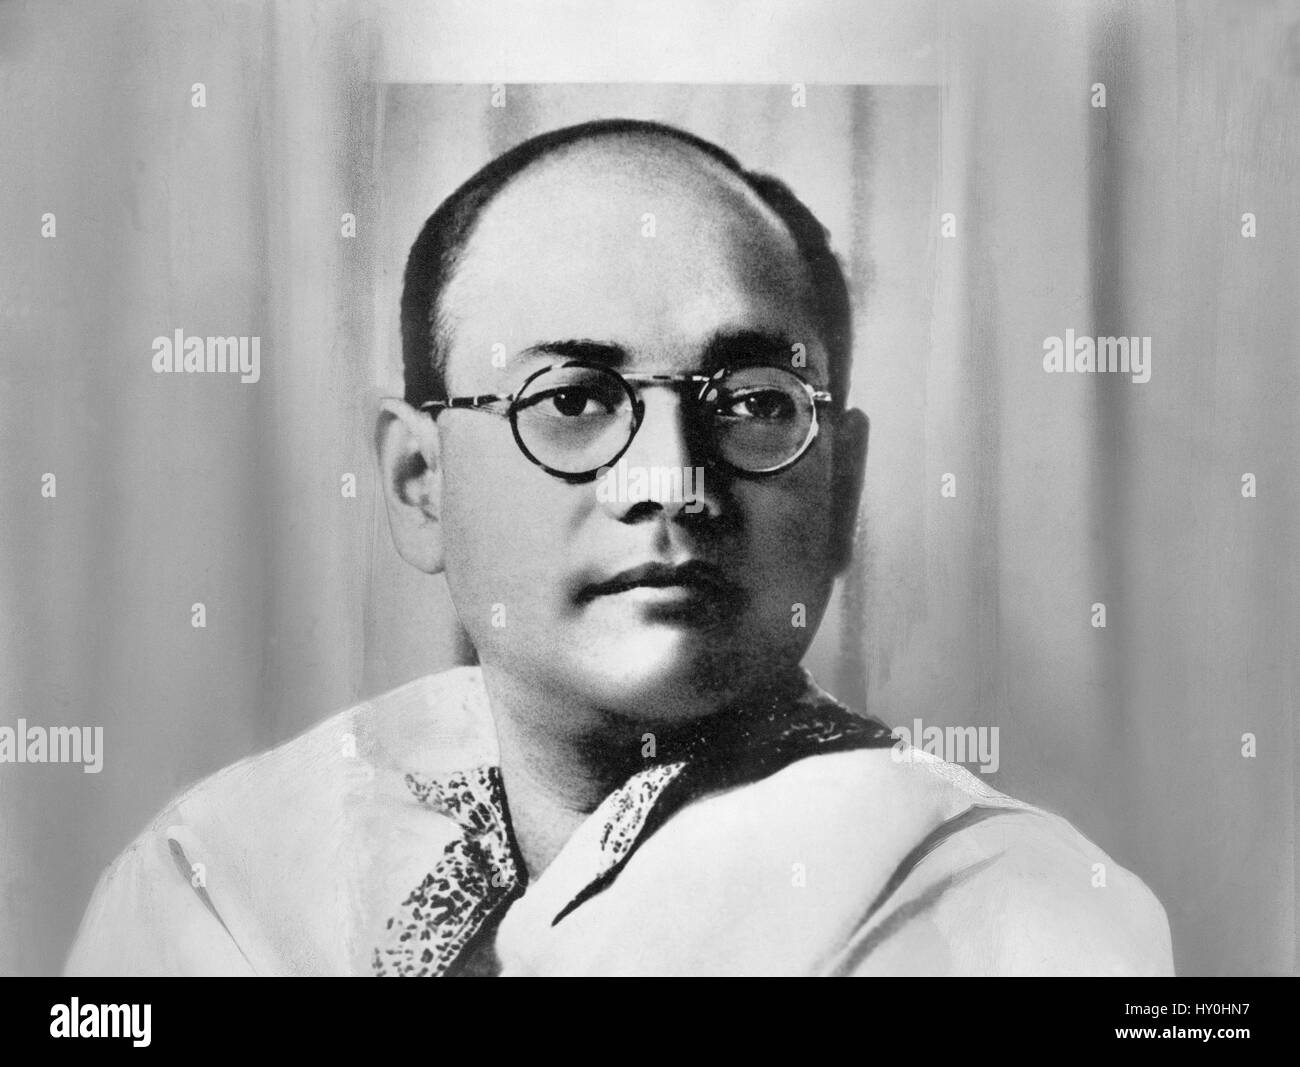 Old vintage 1900s Indian freedom fighters, subhash chandra bose, india, asia - Stock Image